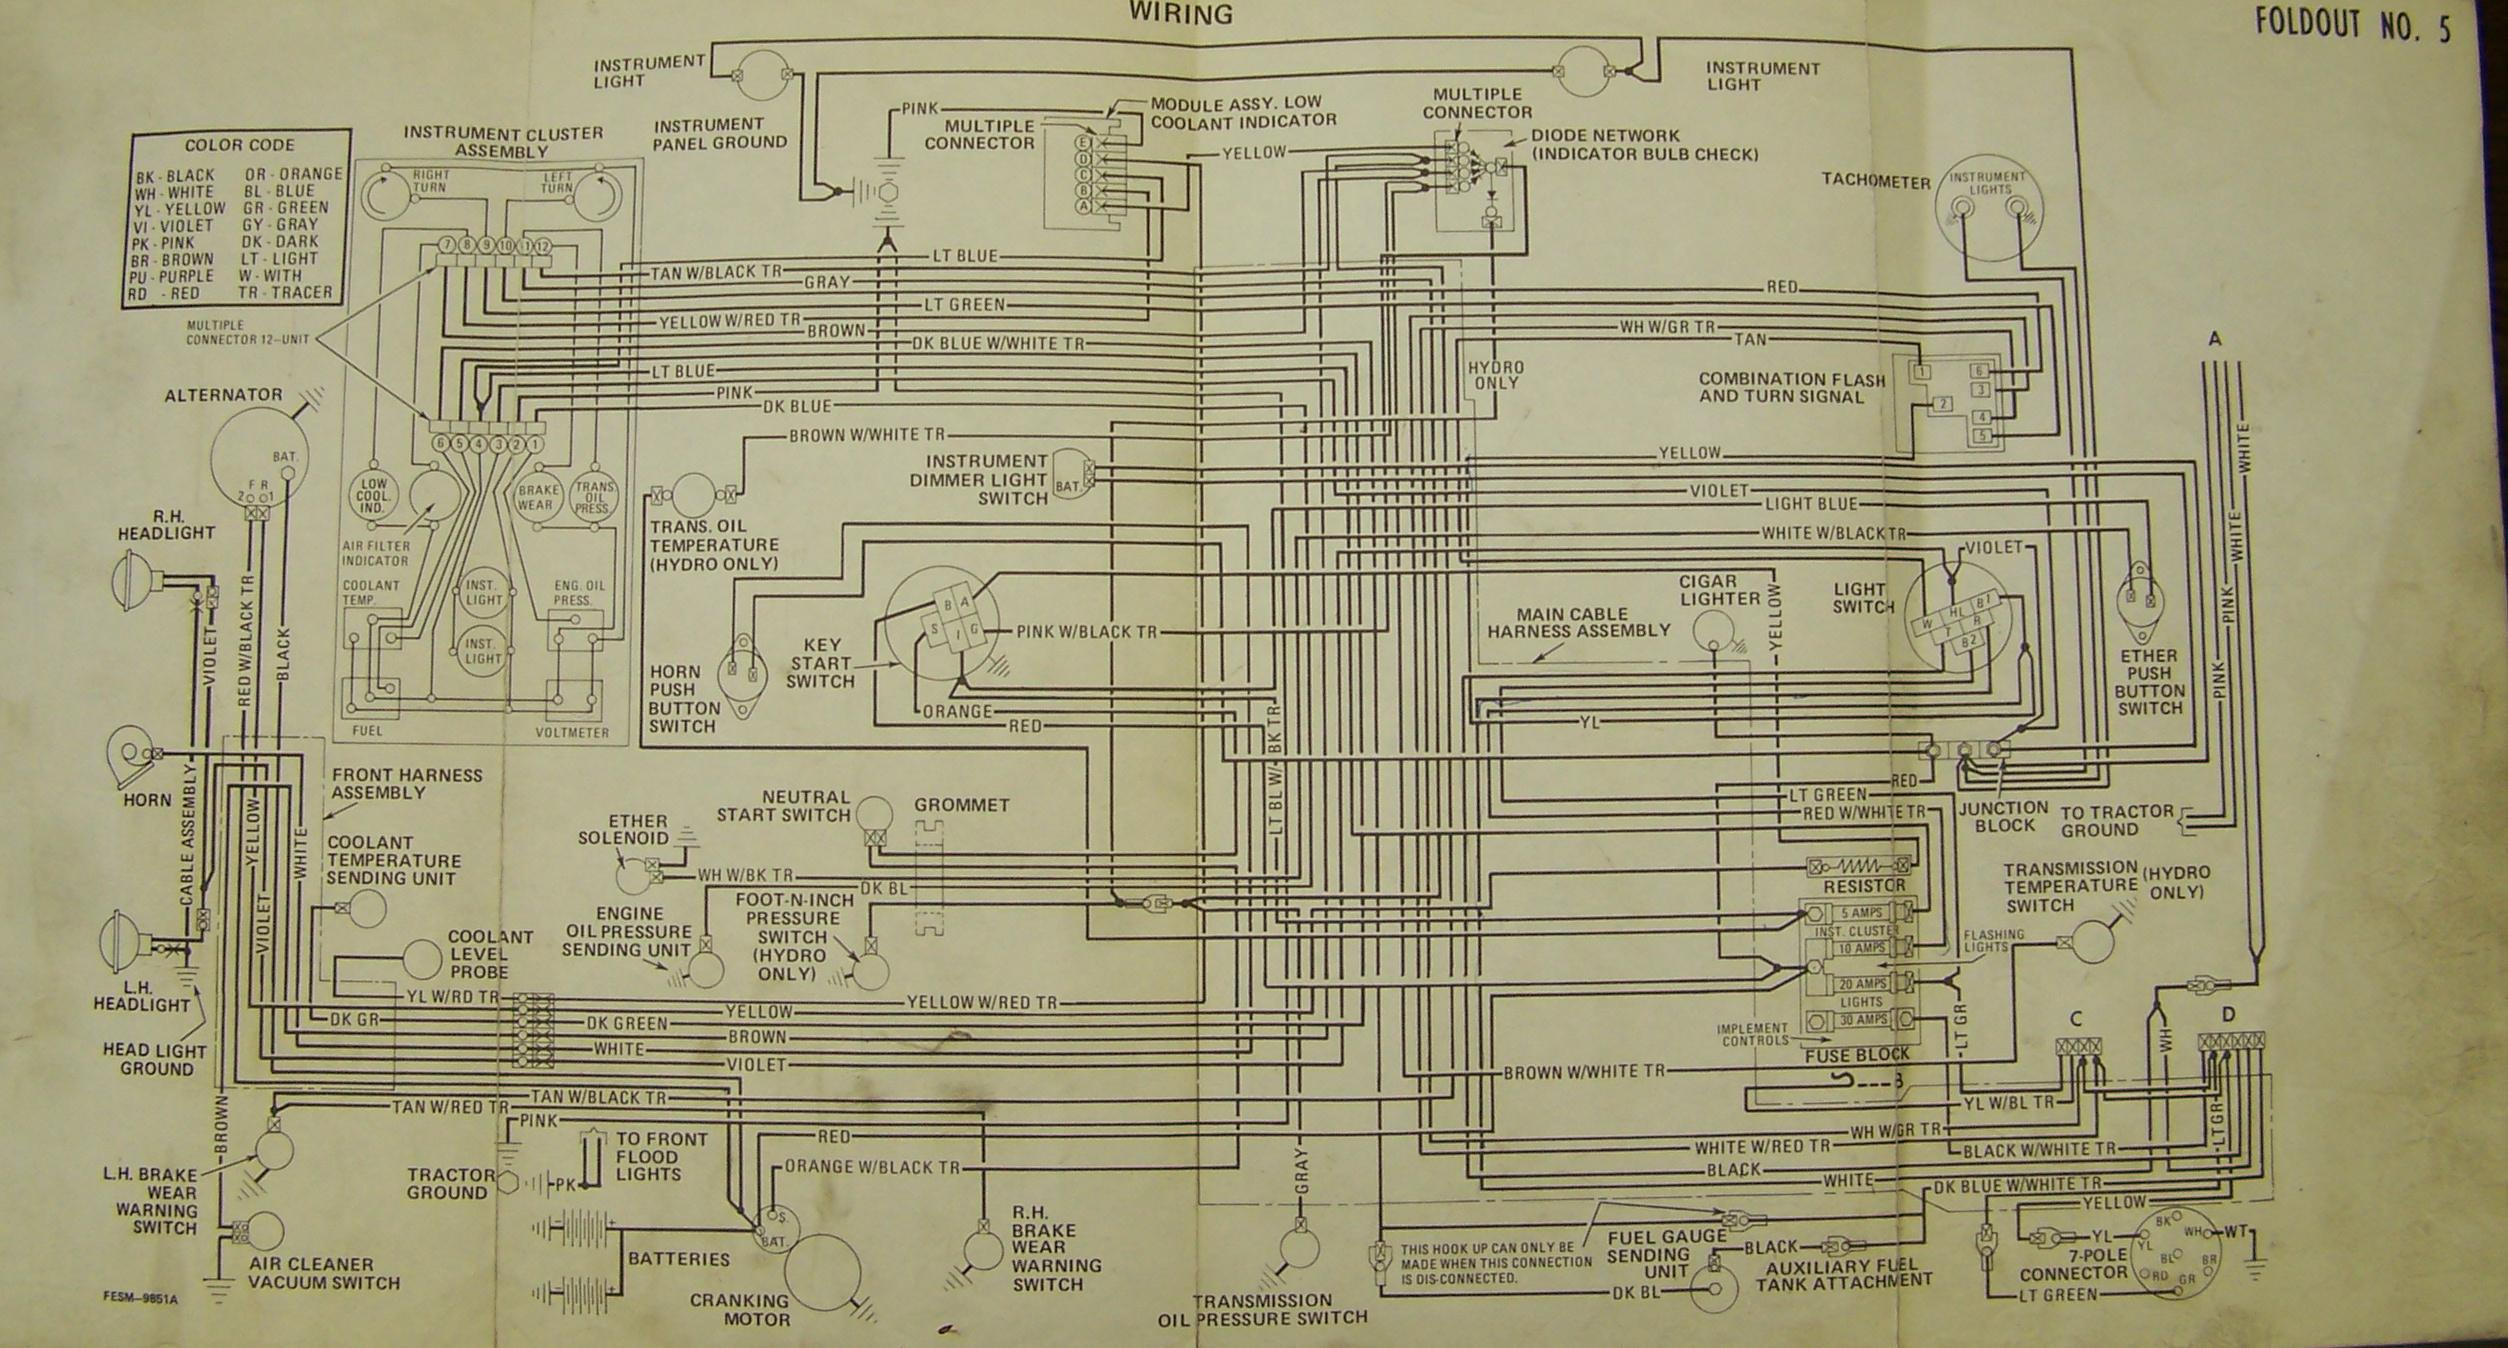 86series5 case 885 starter wiring diagram 1990 chevy starter wiring diagrams case wiring harness at gsmx.co